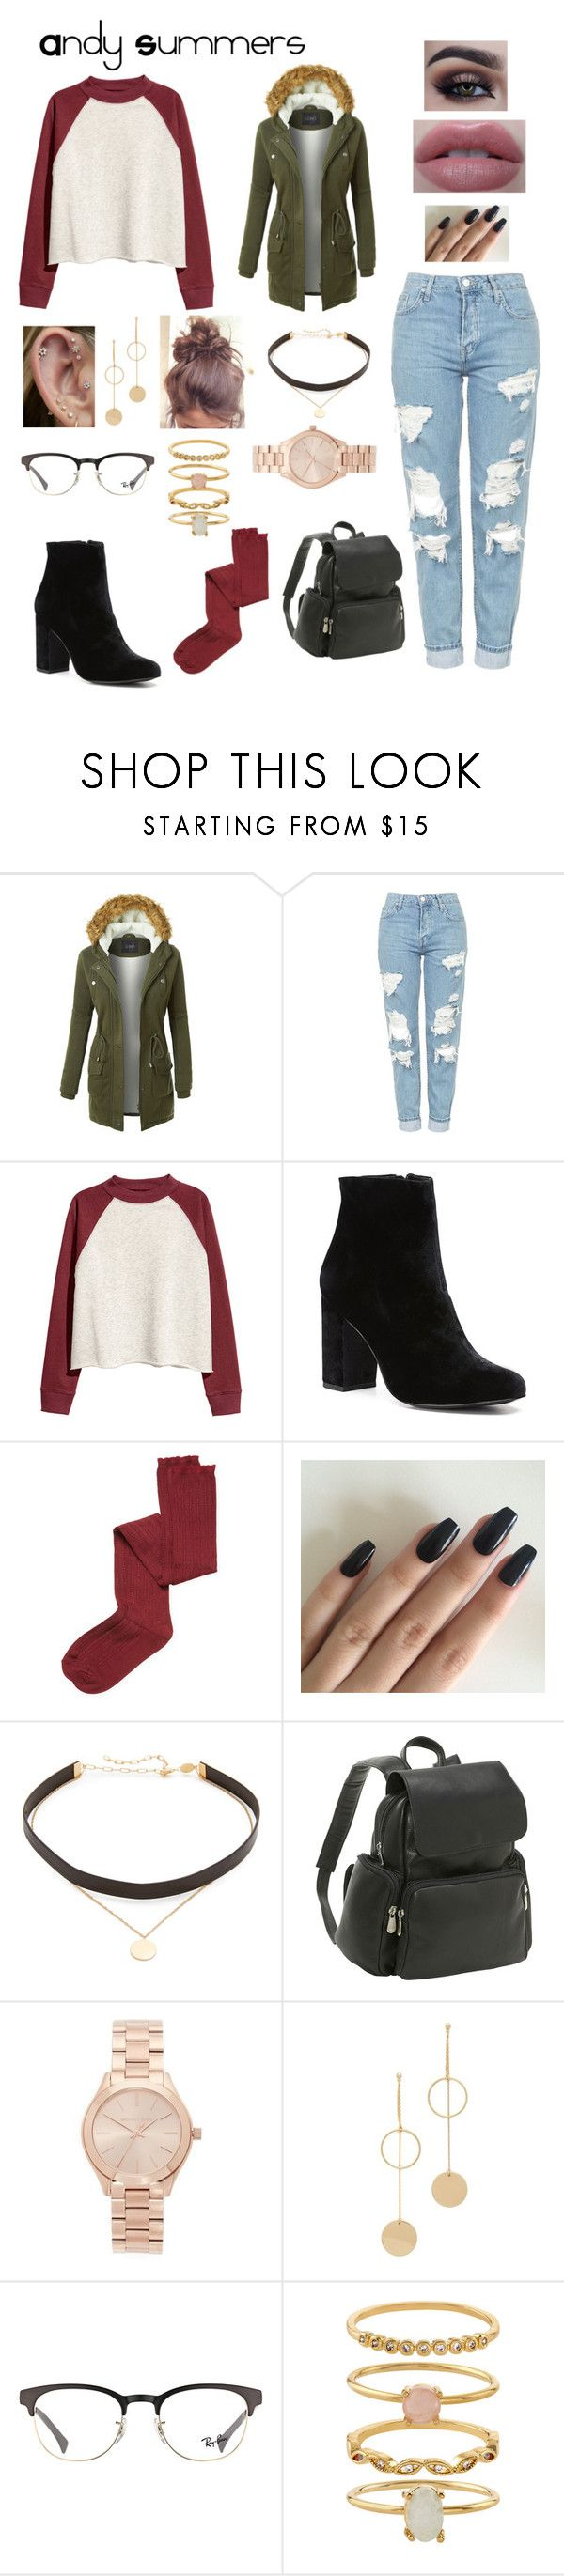 """""""Andy Summers"""" by gissell-nunez ❤ liked on Polyvore featuring LE3NO, Topshop, Witchery, Intimately Free People, Jennifer Zeuner, Le Donne, Michael Kors, Cloverpost, Ray-Ban and Accessorize"""